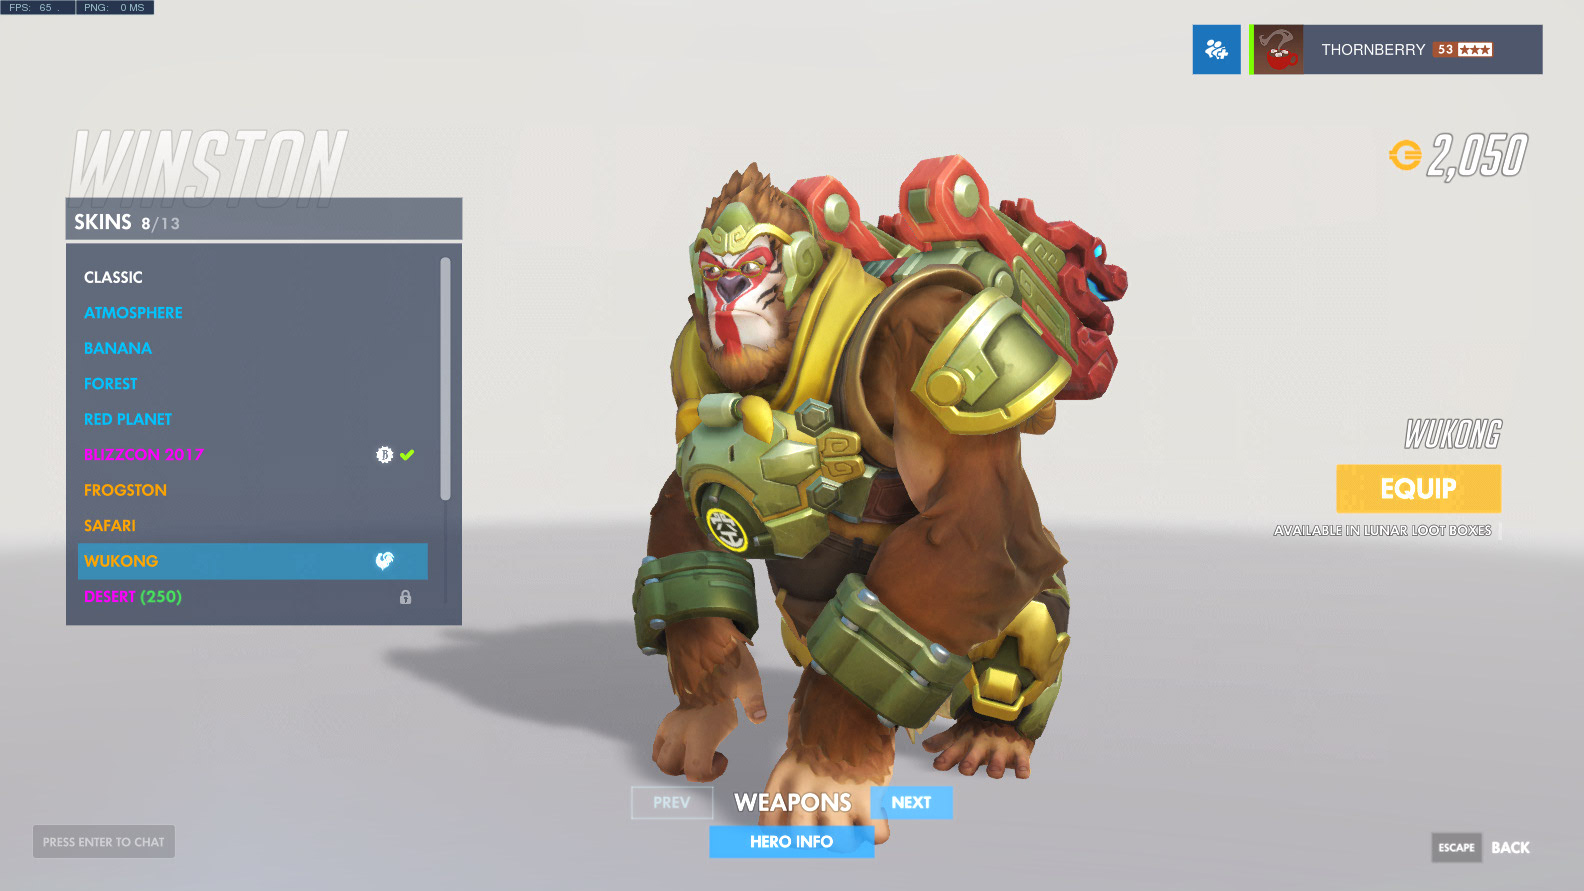 Winston Guide 2018 Overwatch Metabomb